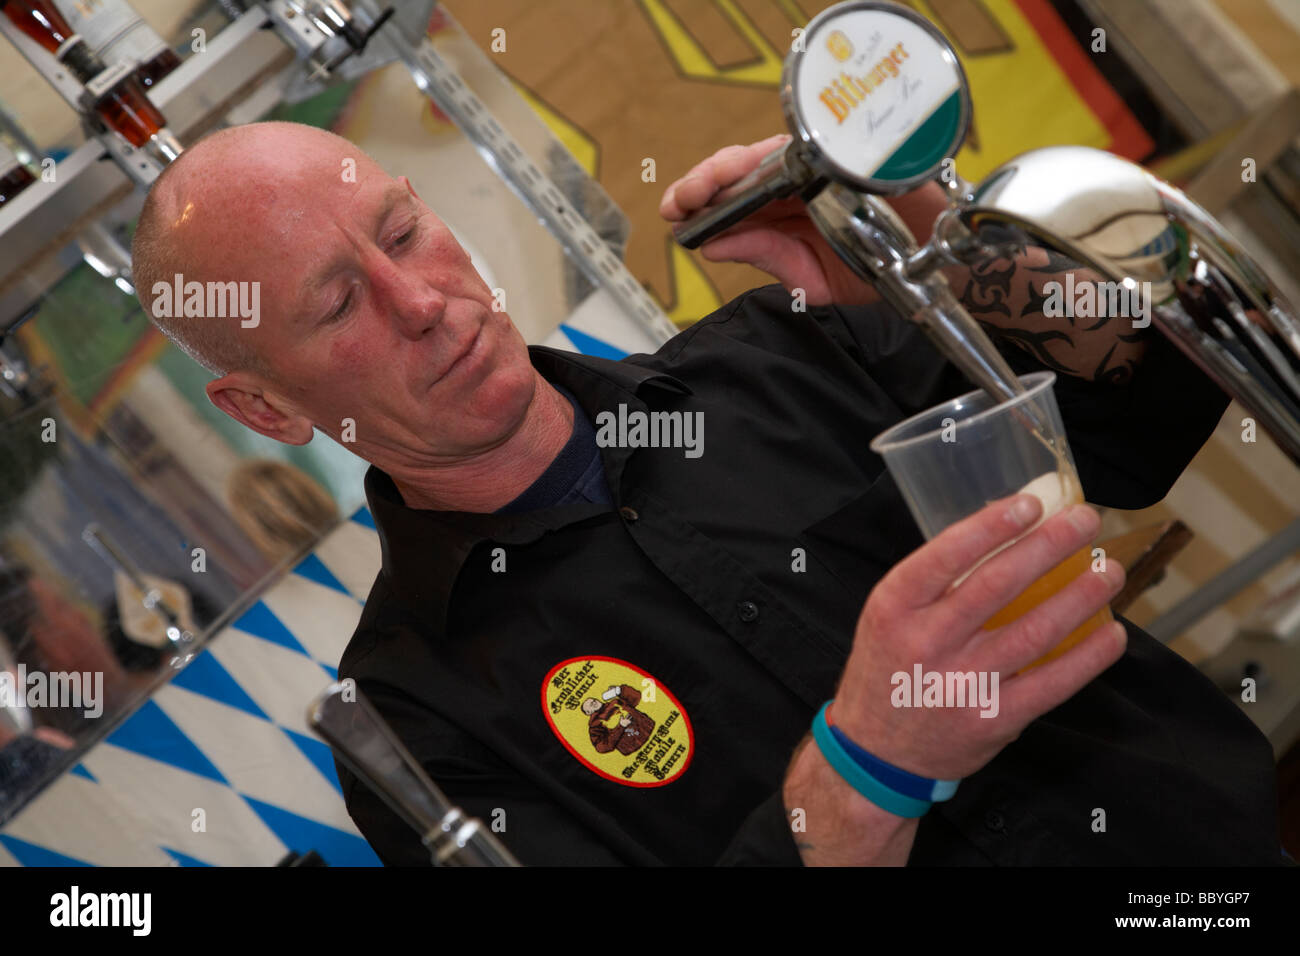 barman pouring a beer into a plastic cup in an imitation german beer stall in the uk - Stock Image